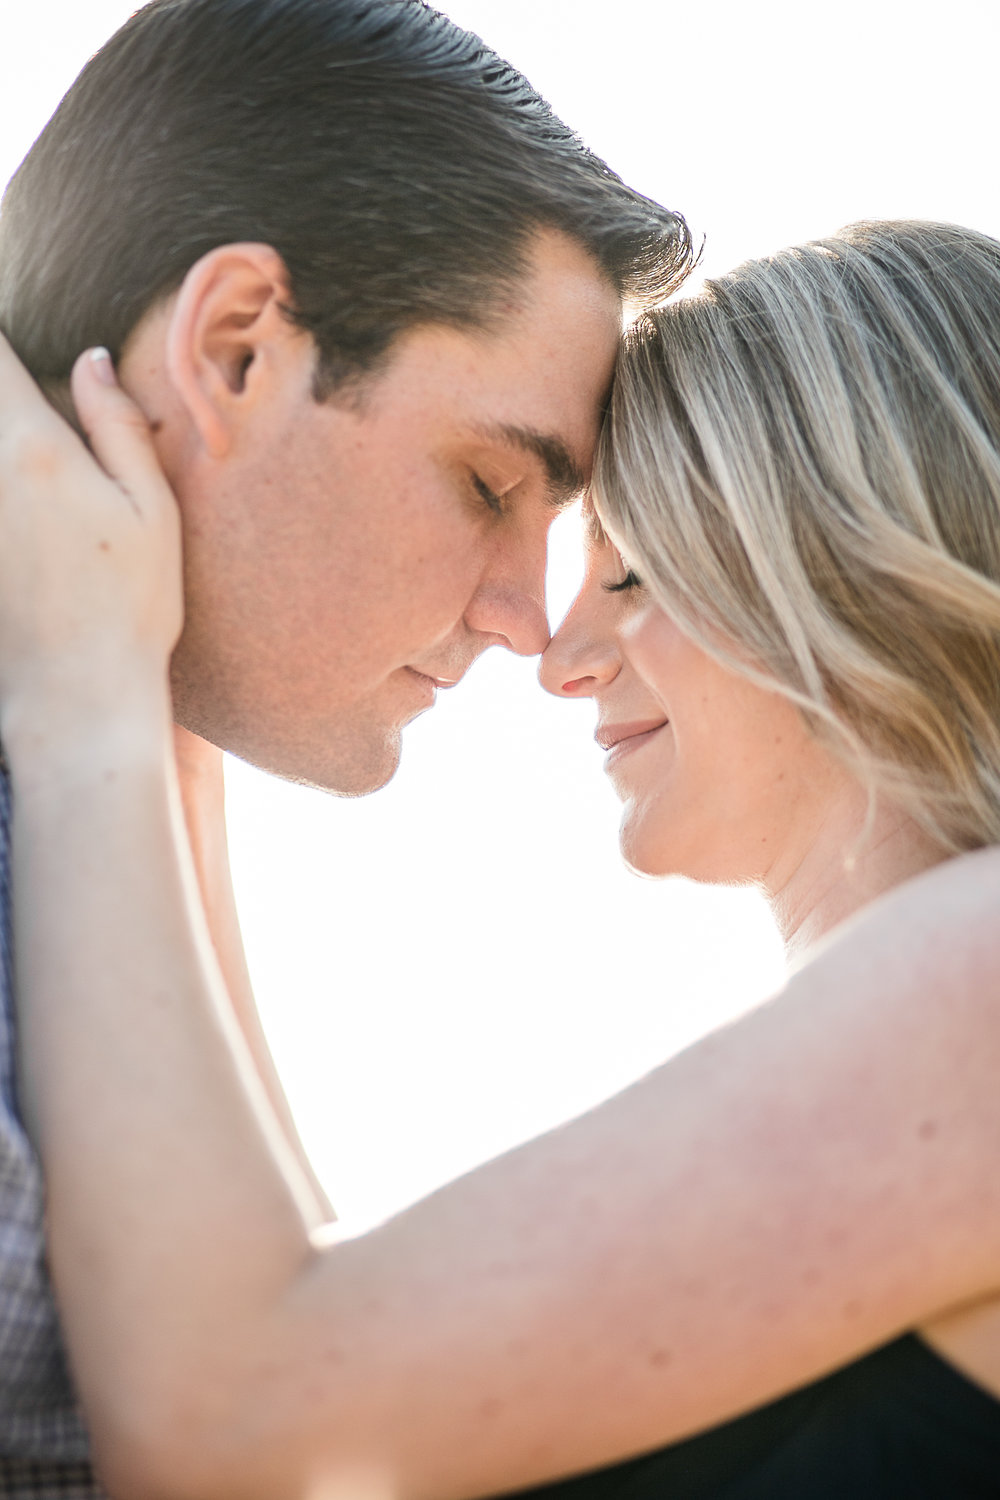 Shane_&_Shayna_Torrey_Pines Maternity_Session_2017-11.jpg